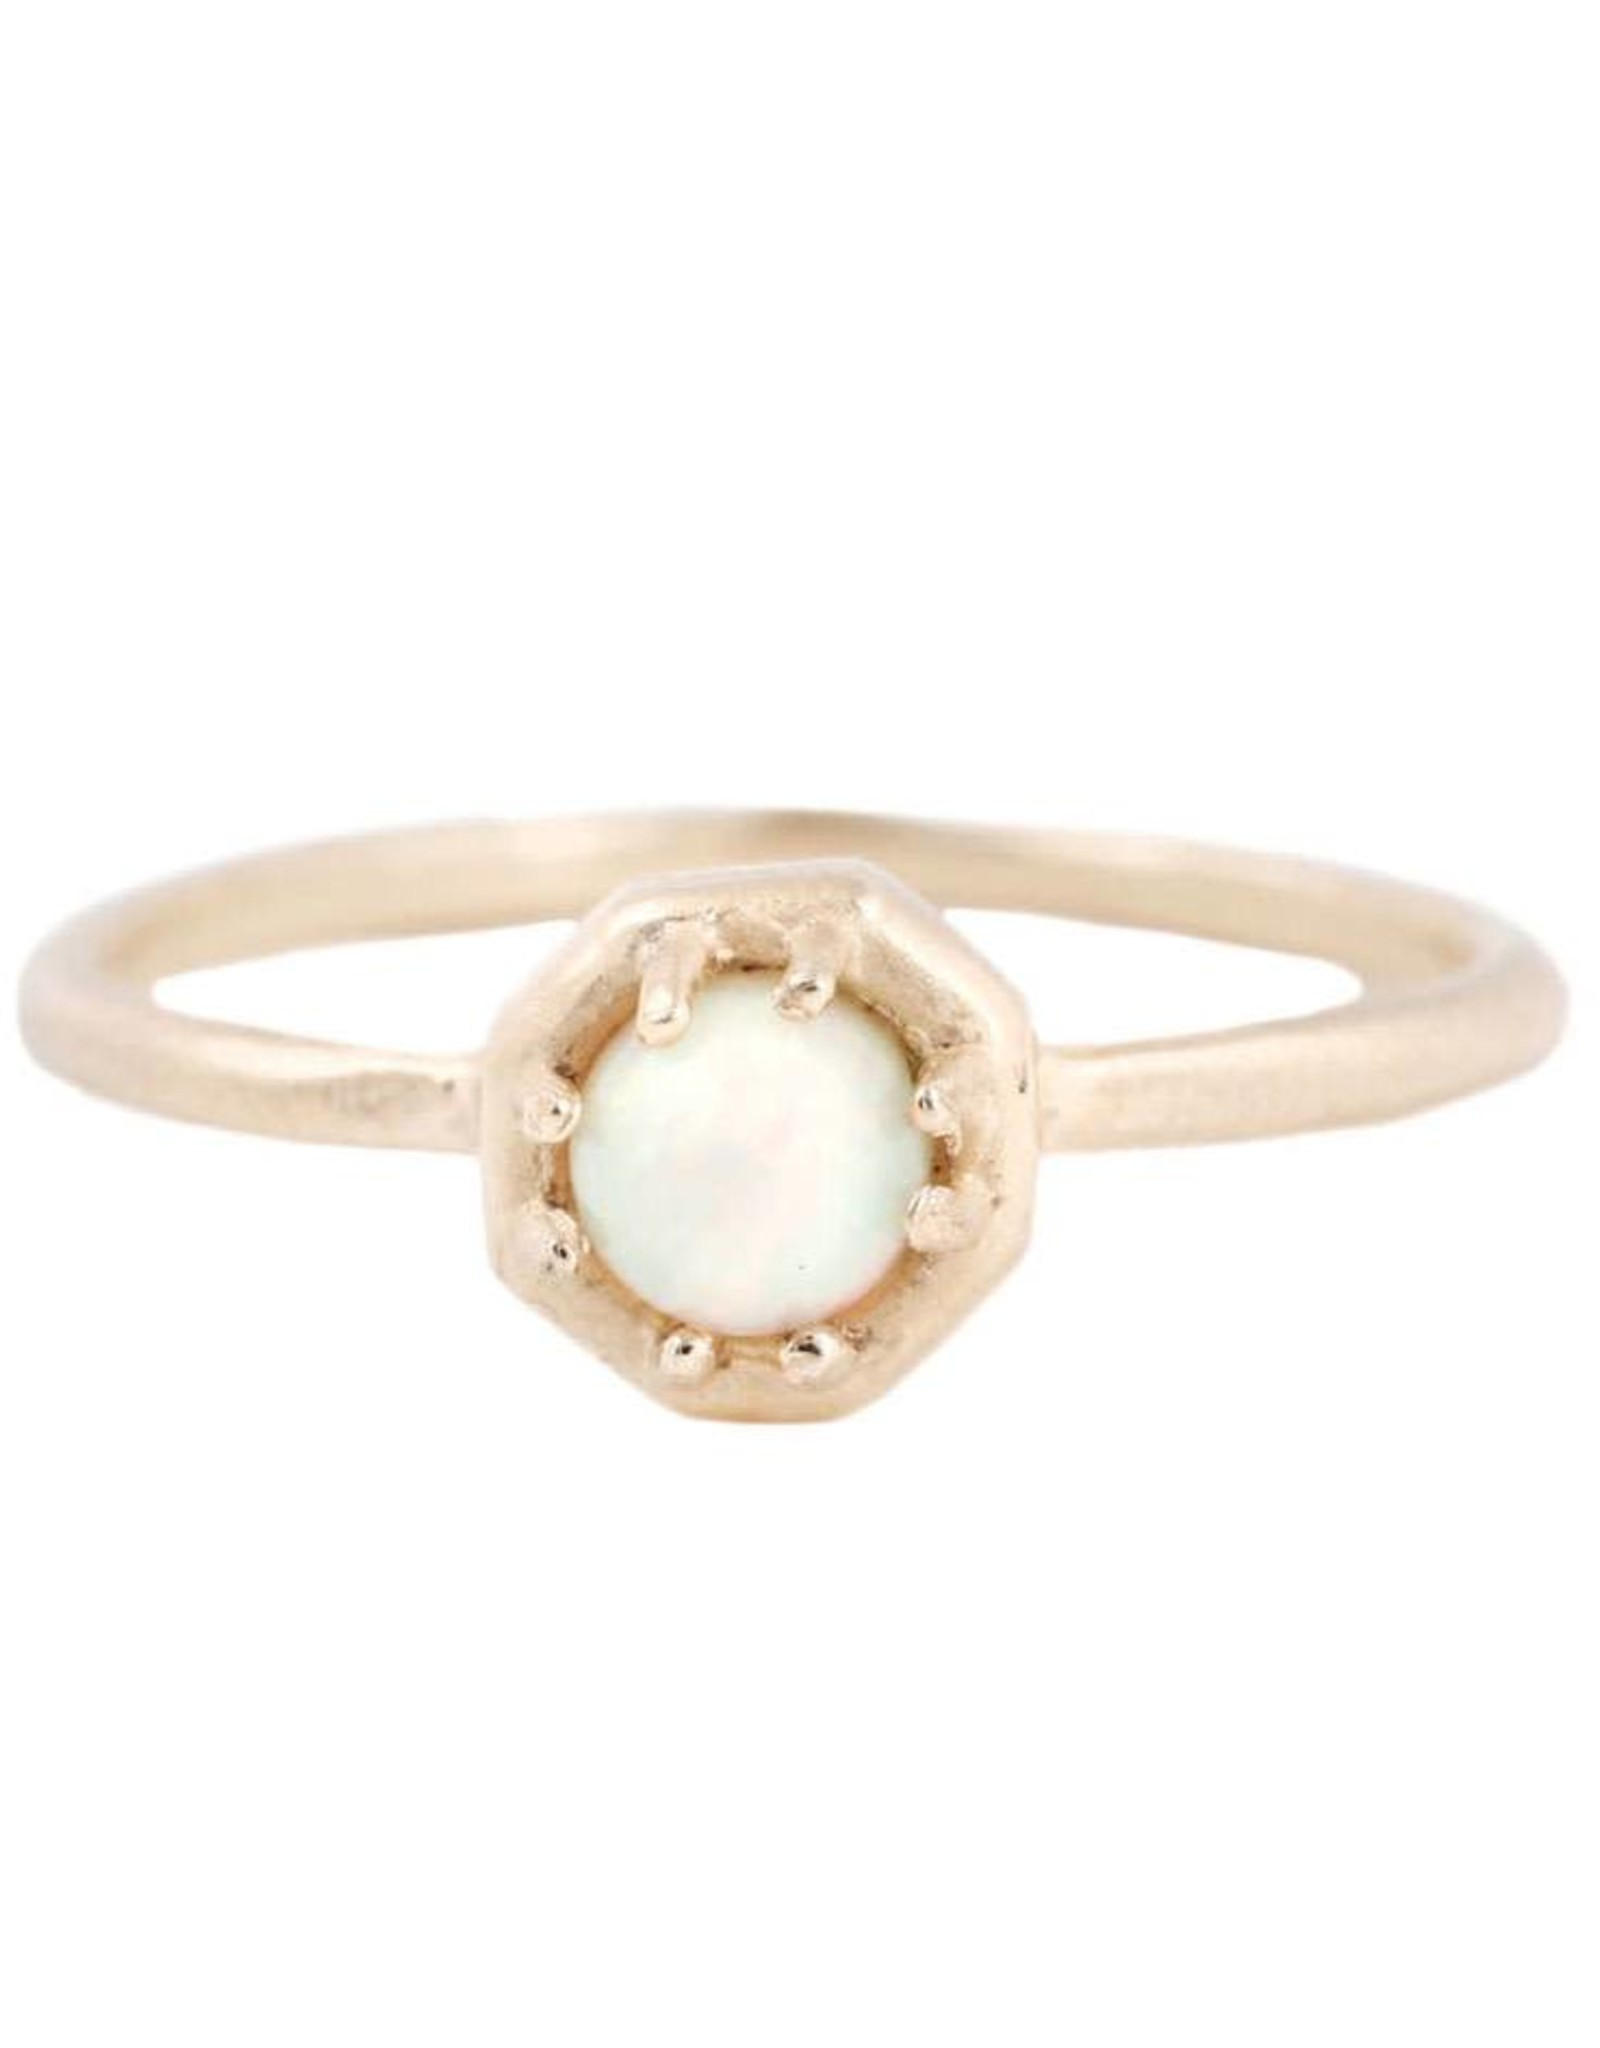 Lauren Wolf Jewelry Tiny Gold Octagon Ring - Opal